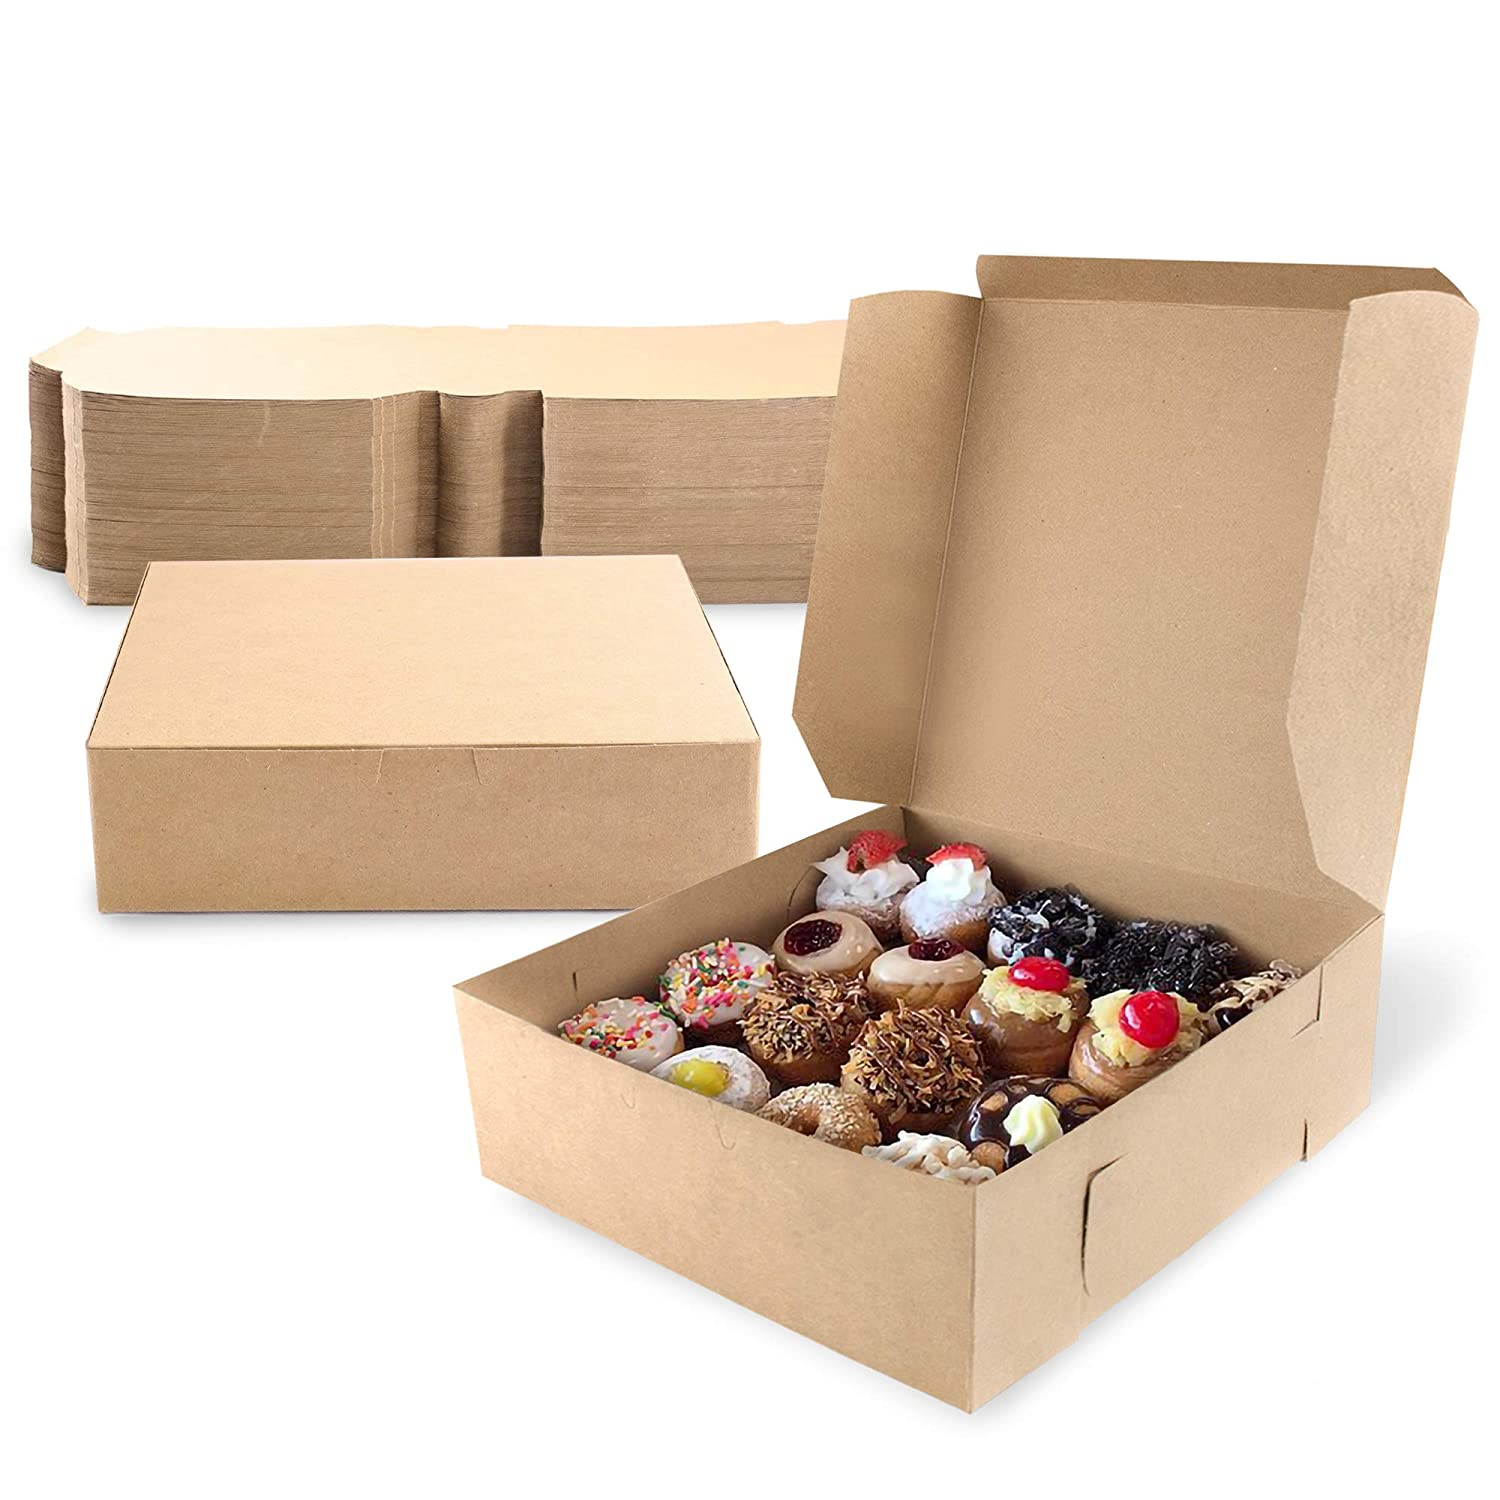 [25 Pack] Pastry Boxes - 9 x 9 x 3 Inches Brown Bakery Box for Cookies, Compostable Kraft Paper Cardboard for Baked Goods Packaging, Cake, Food Treat, Donut, Cupcake, Candy, Bread, Bridesmaid Gift Box